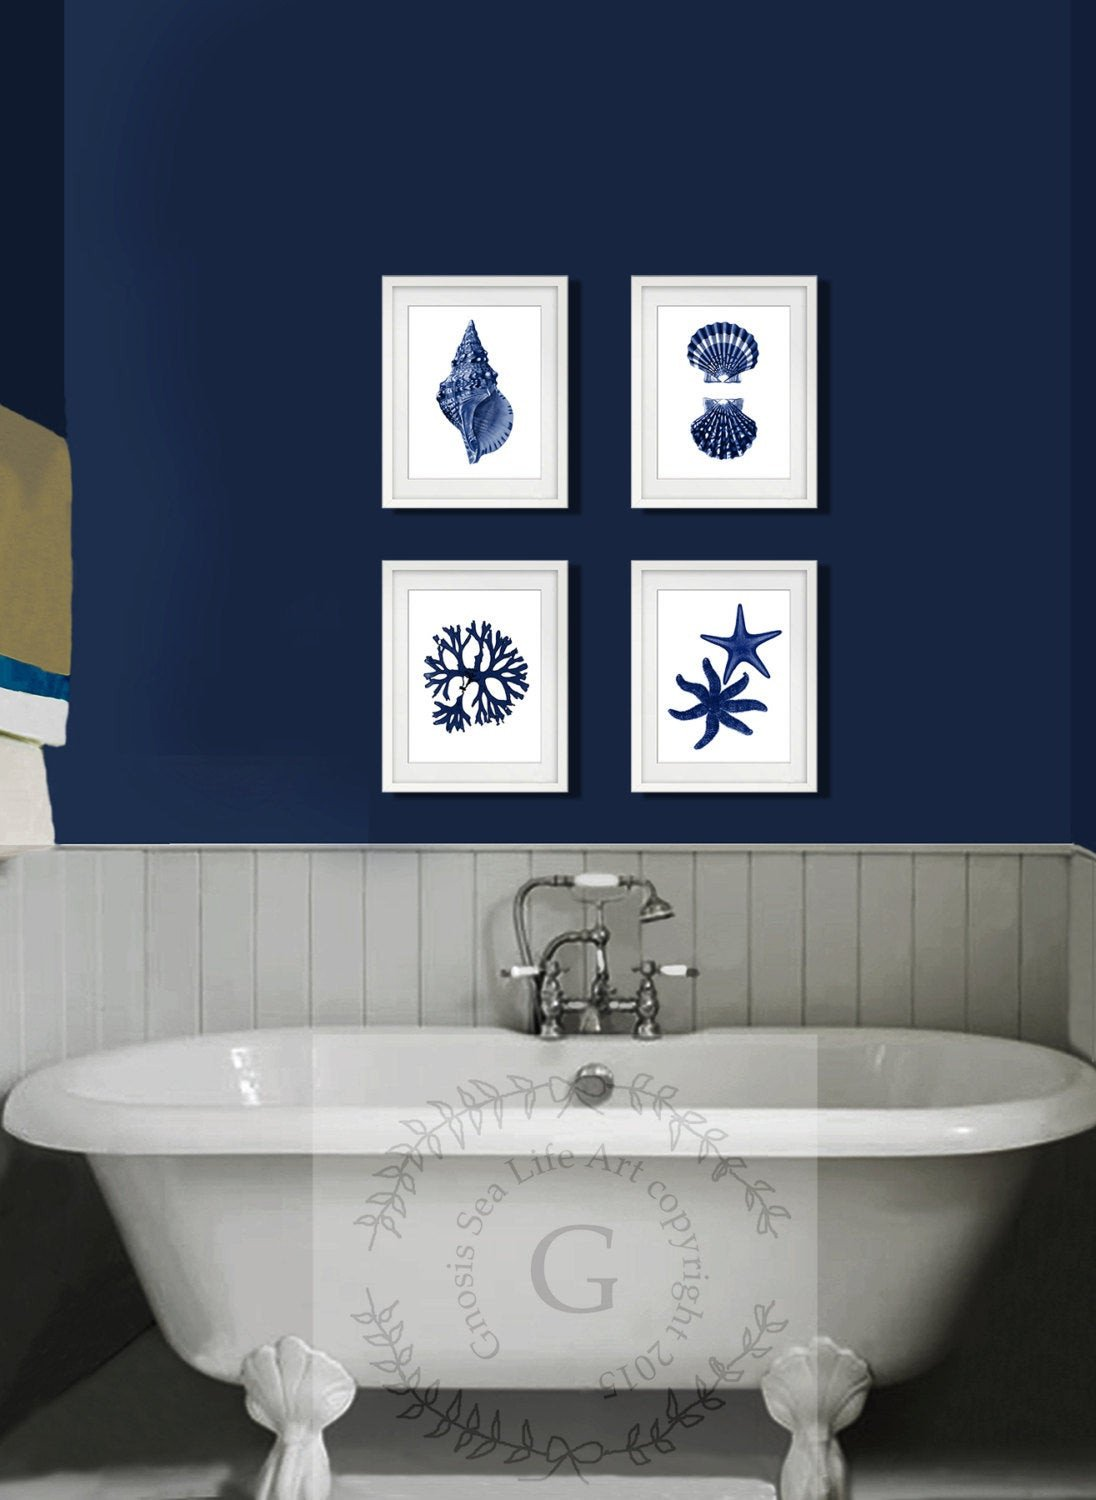 Wall Art for Bathroom Decor Elegant Coastal Wall Decor Navy Blue Wall Art Set Of 4 Beach Decor